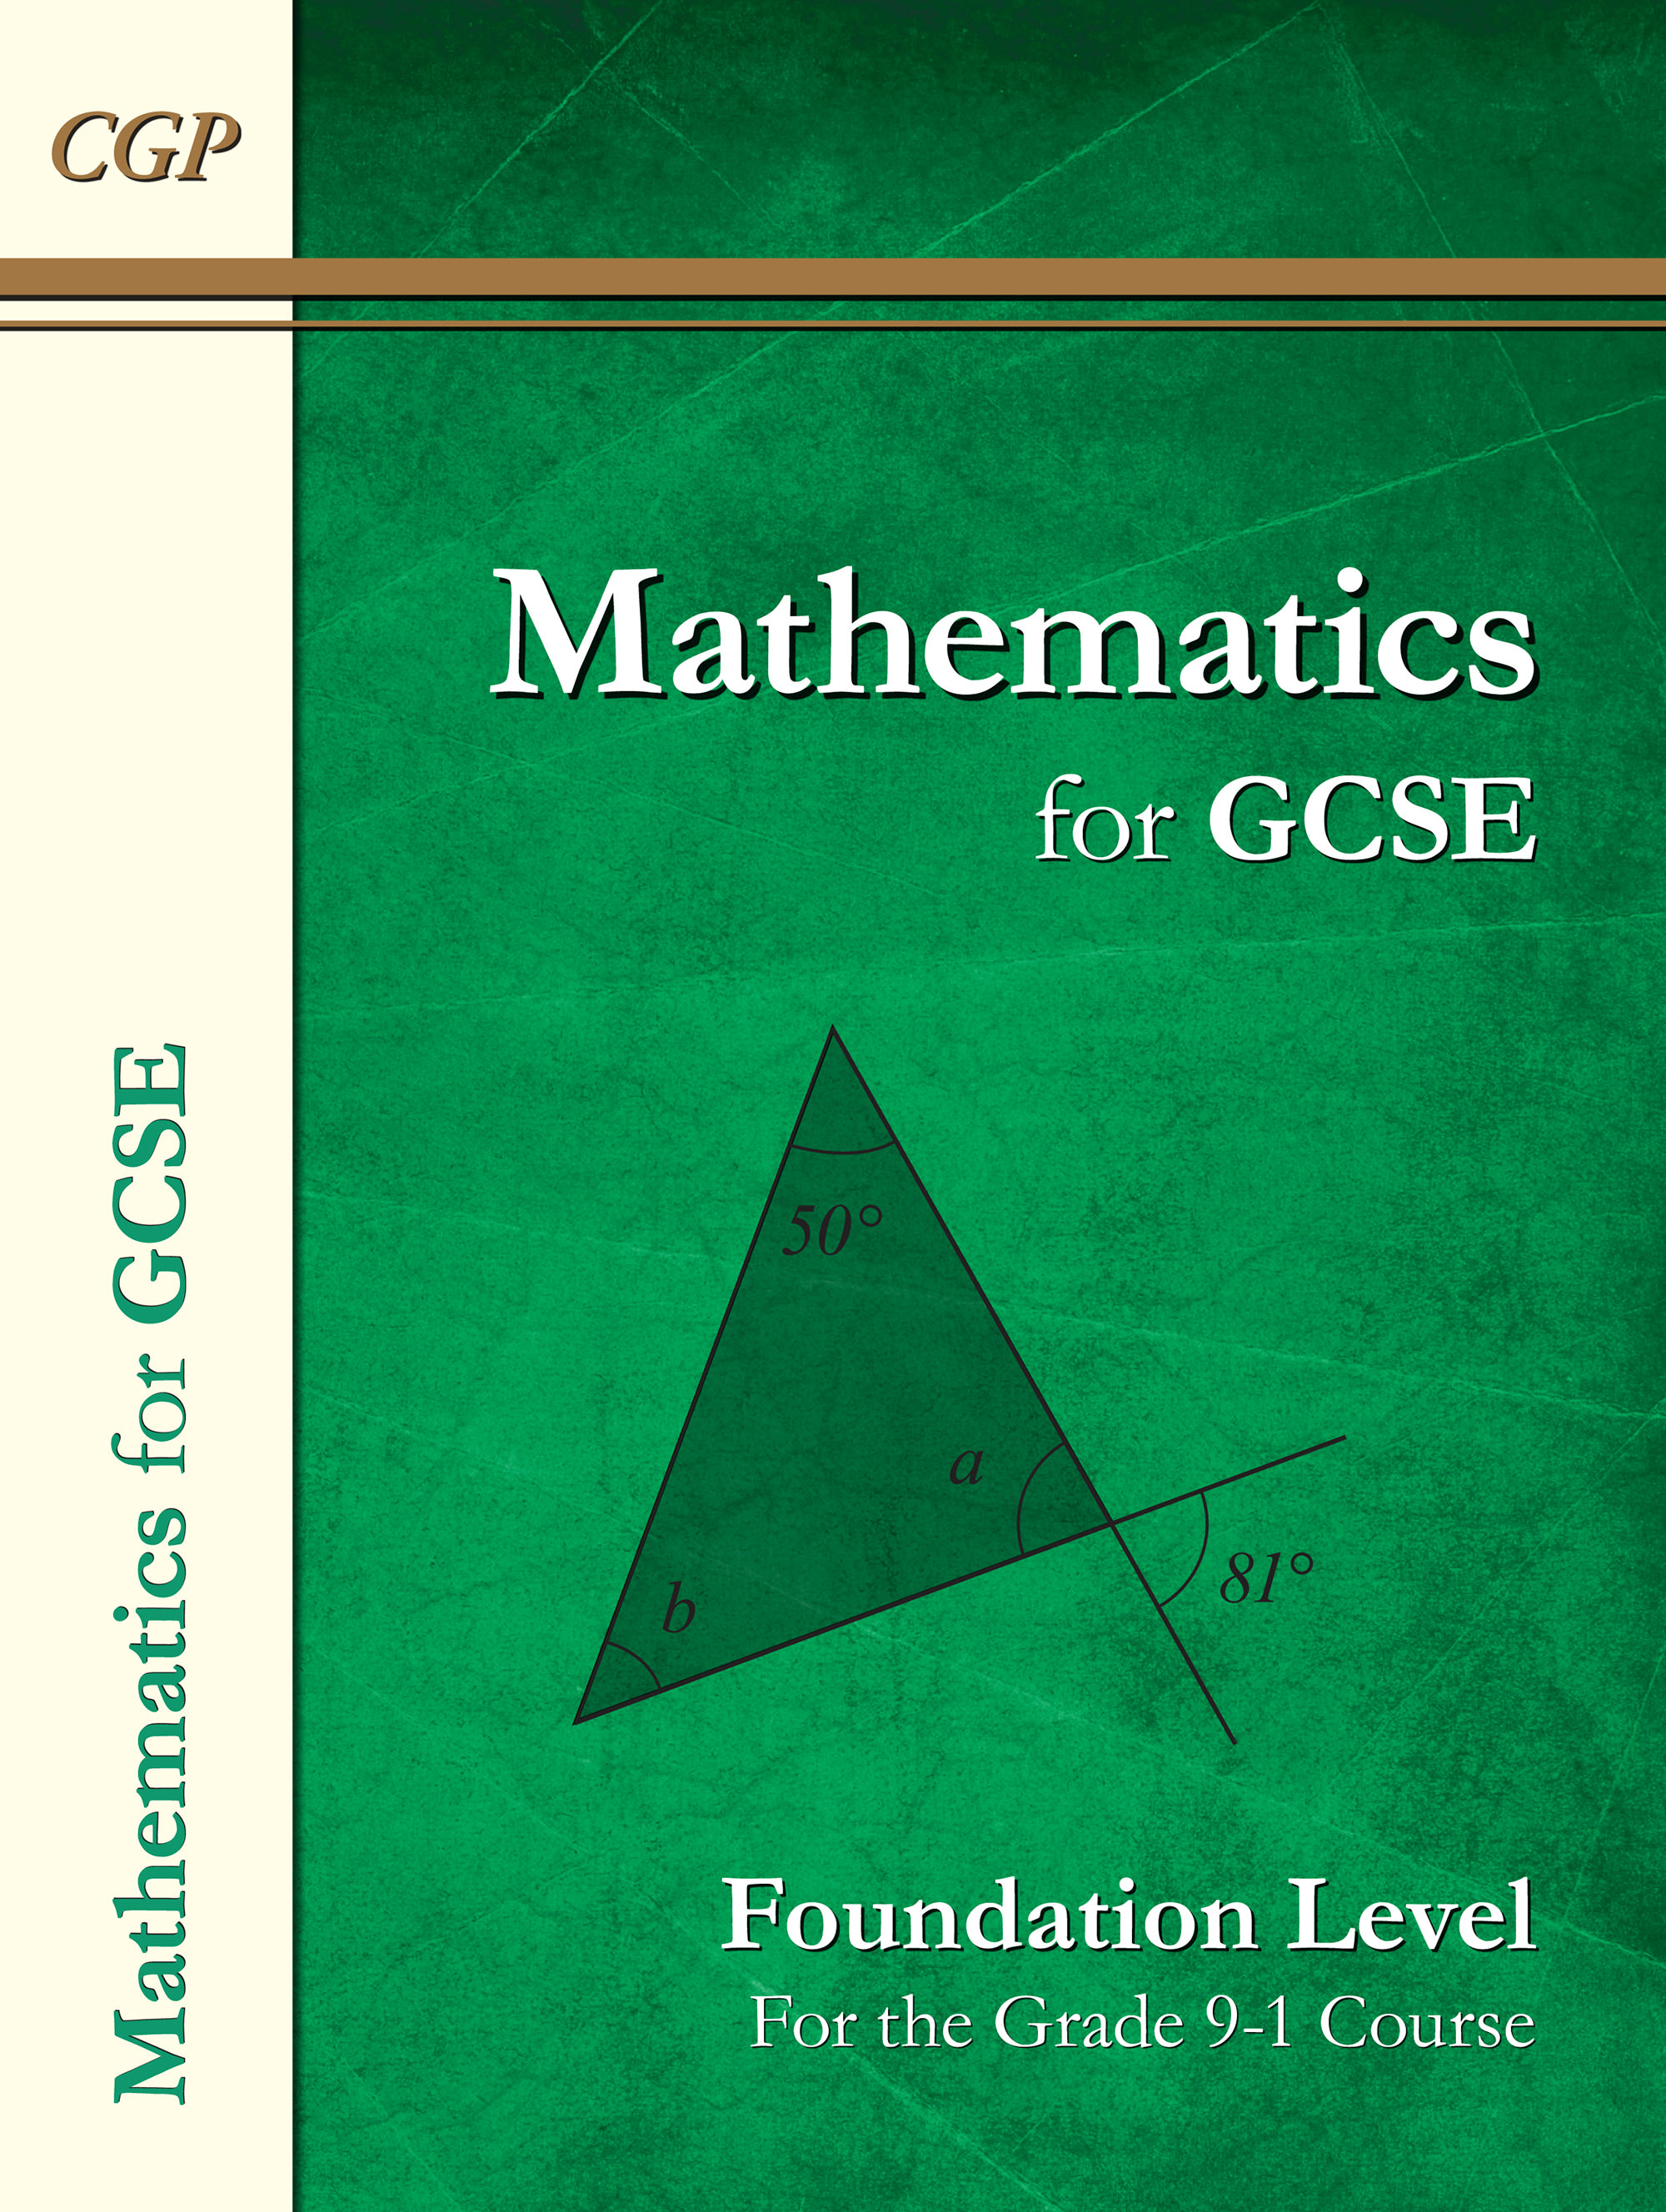 MFN42 - New Maths for GCSE Textbook: Foundation (for the Grade 9-1 Course)